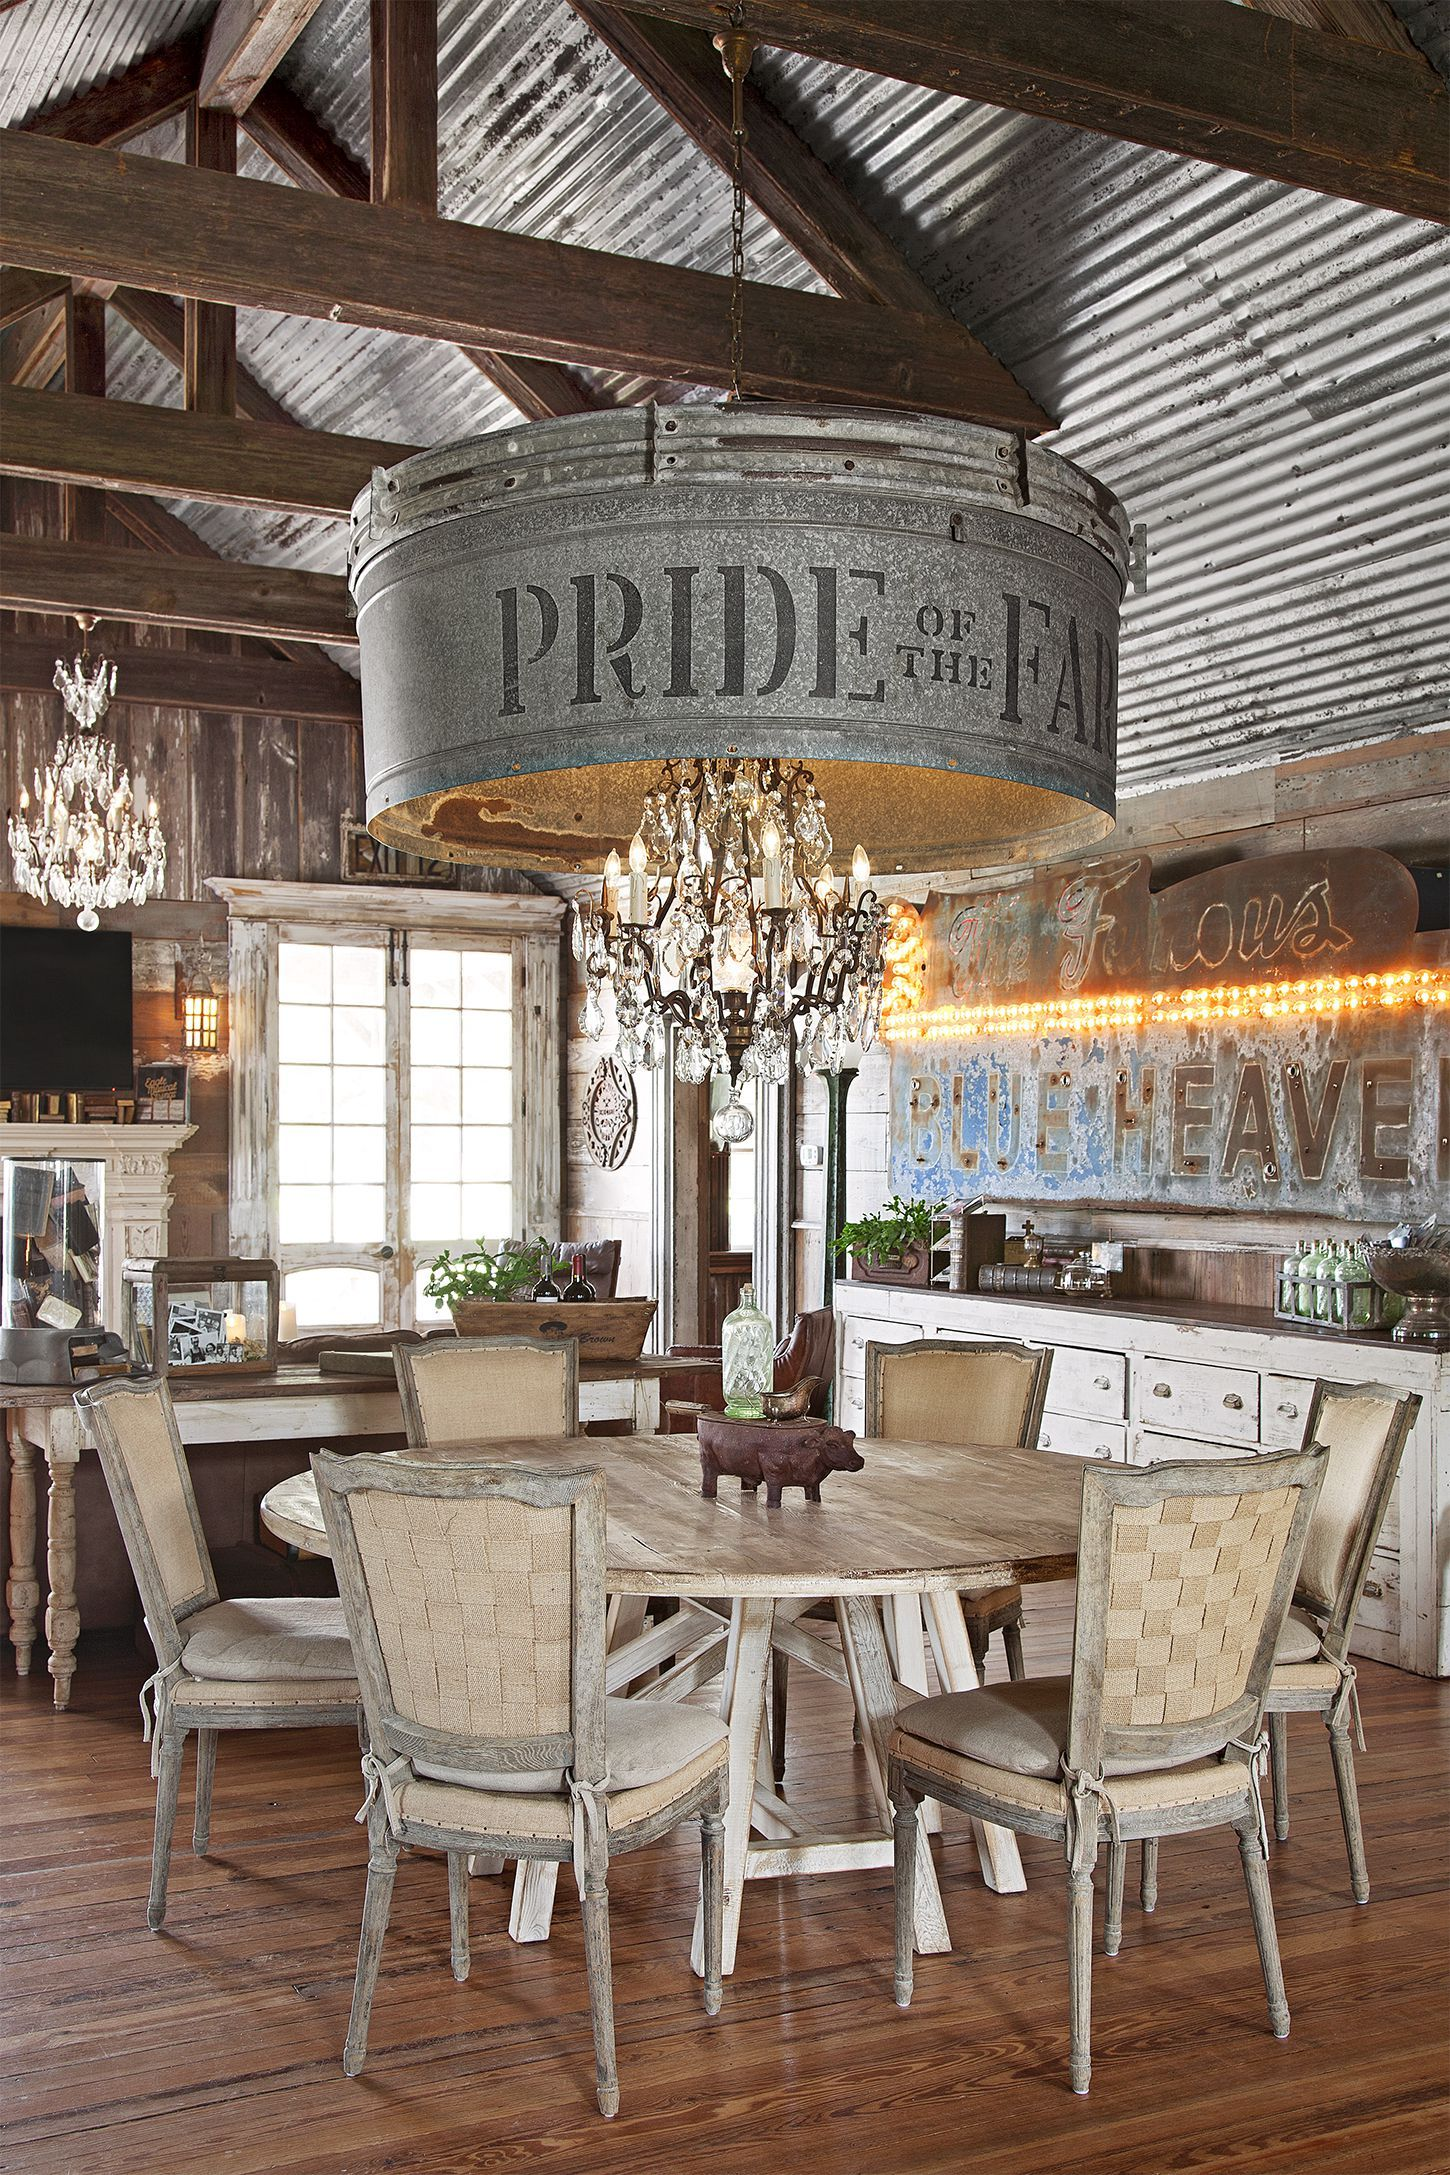 This Rustic Farmhouse Has the Most Incredible Chandelier